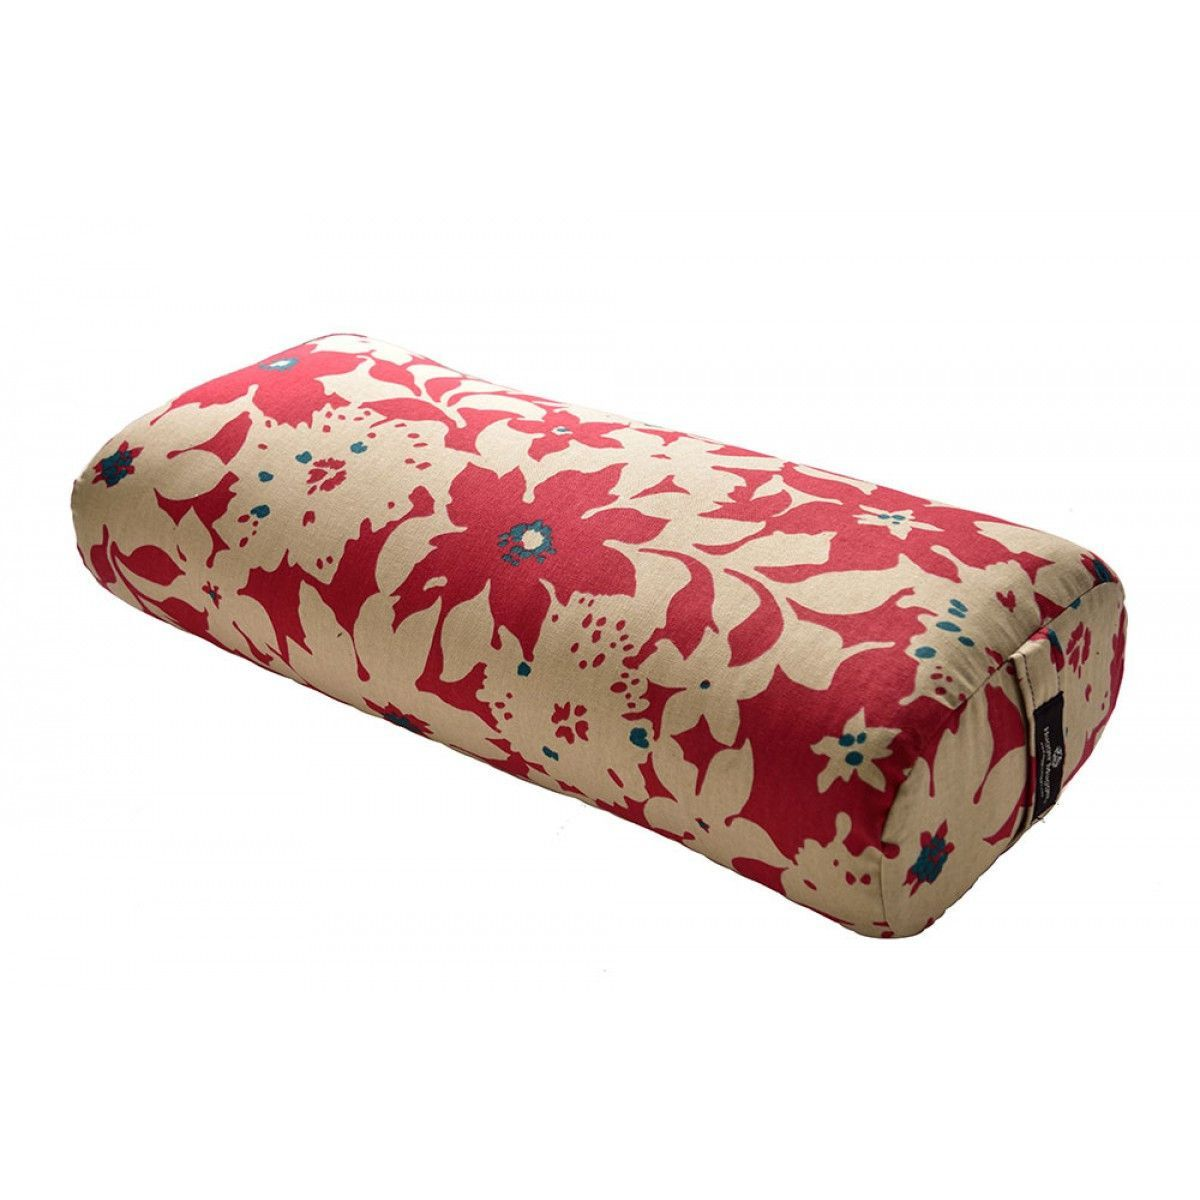 This handmade bolster combines just the right amount of inner